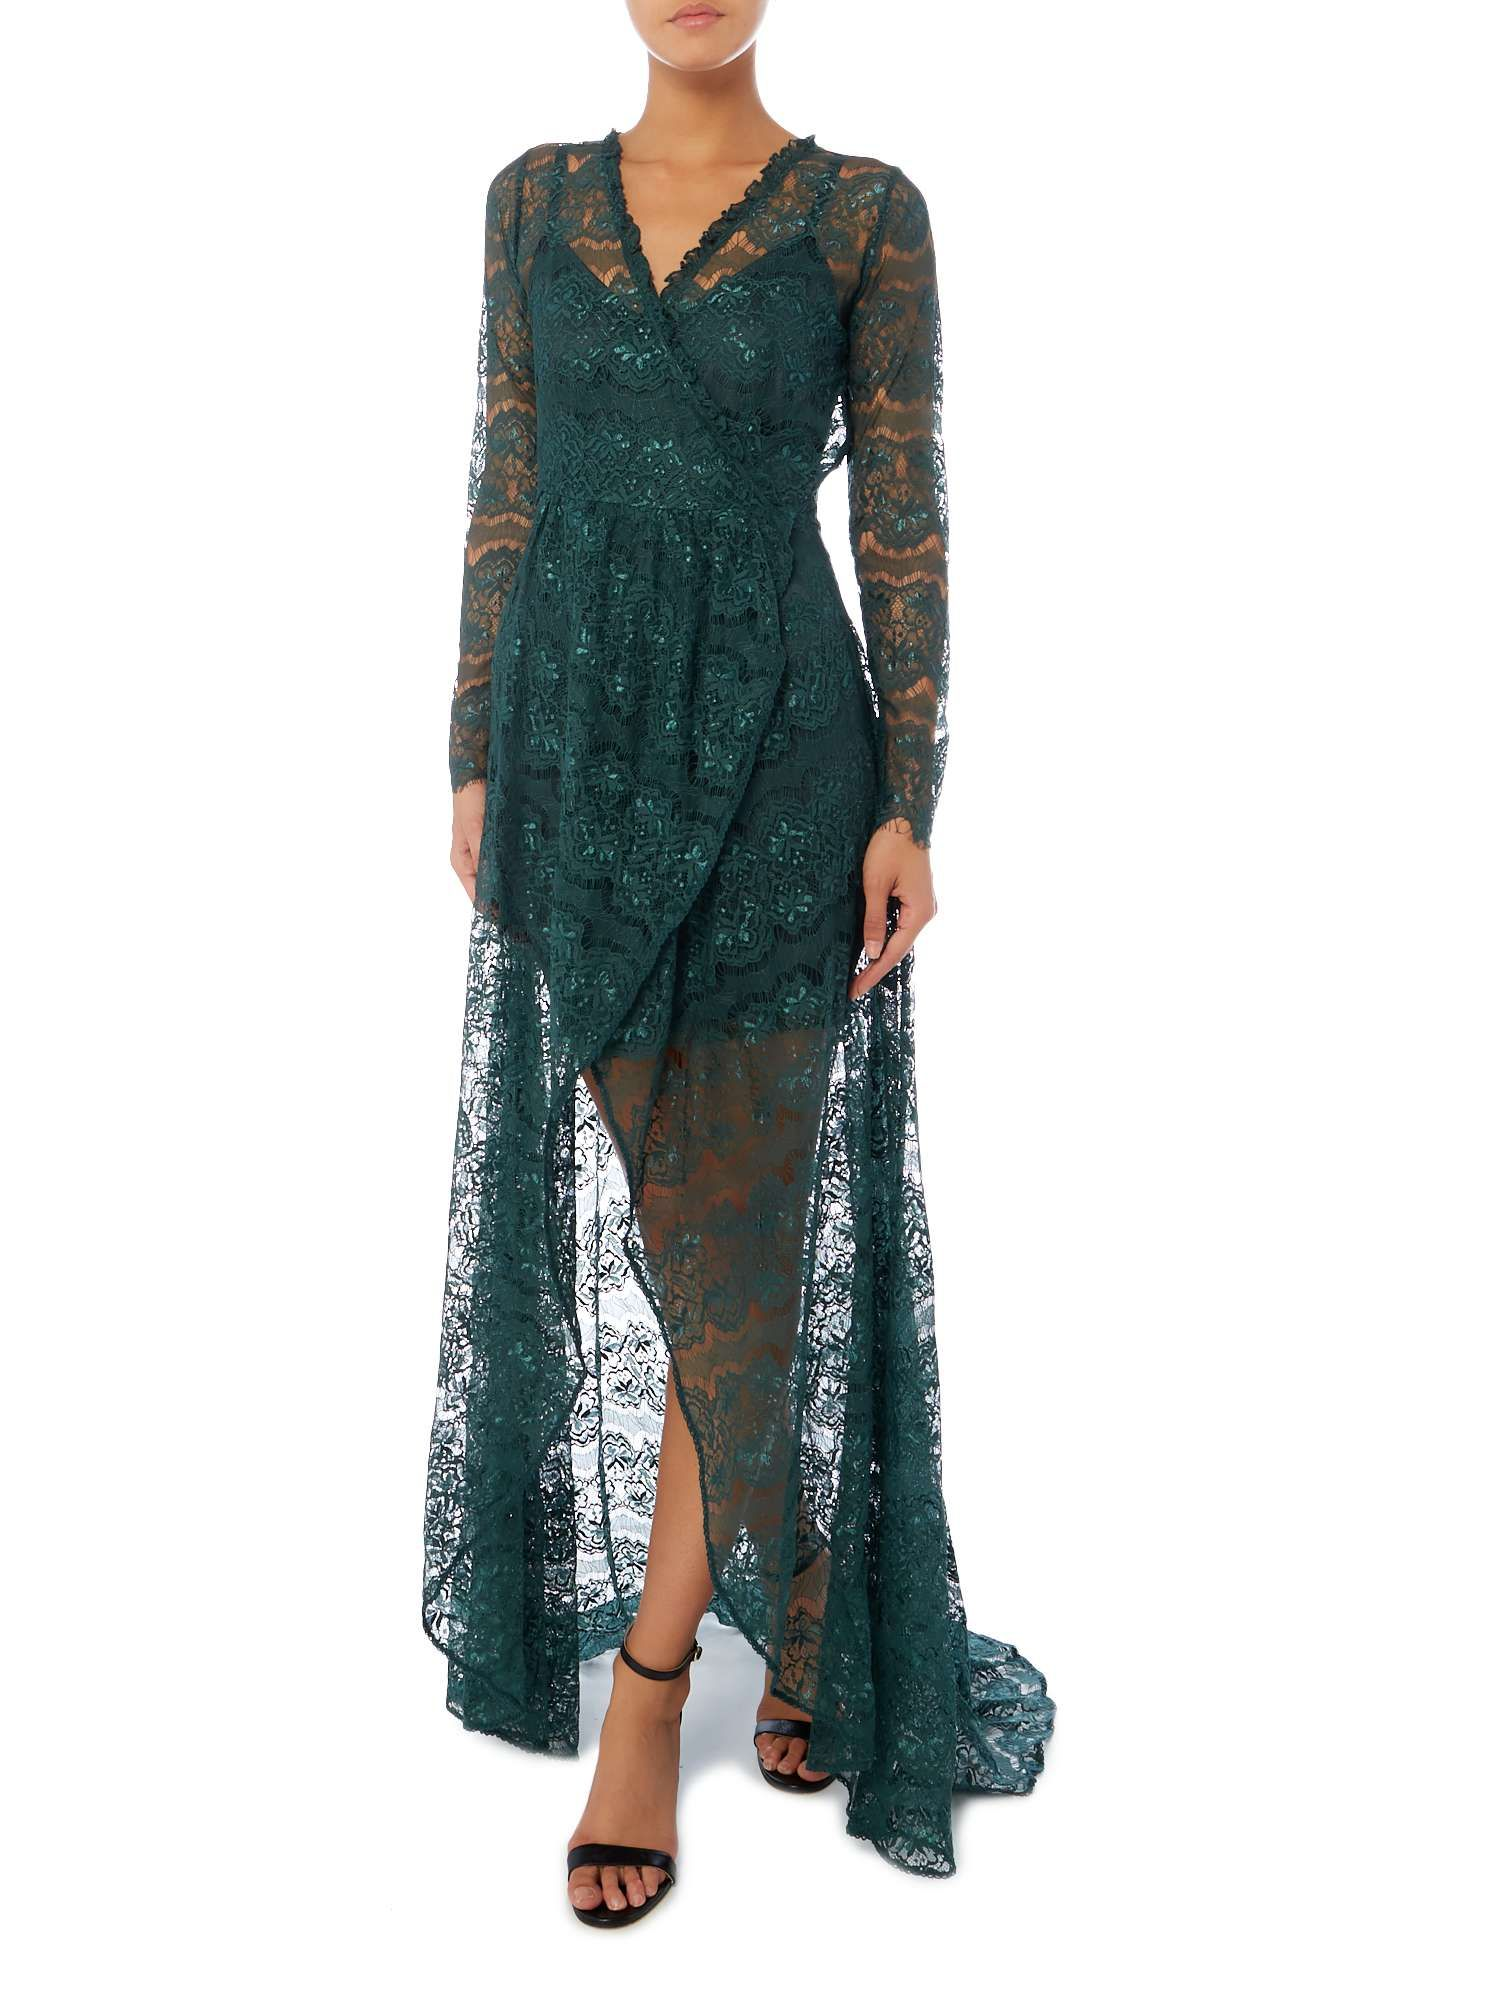 Body Frock Long Sleeve Lace Maxi Dress House Of Fraser Prom Dresses Long With Sleeves Long Sleeve Lace Maxi Dress Maxi Dress [ 2000 x 1500 Pixel ]